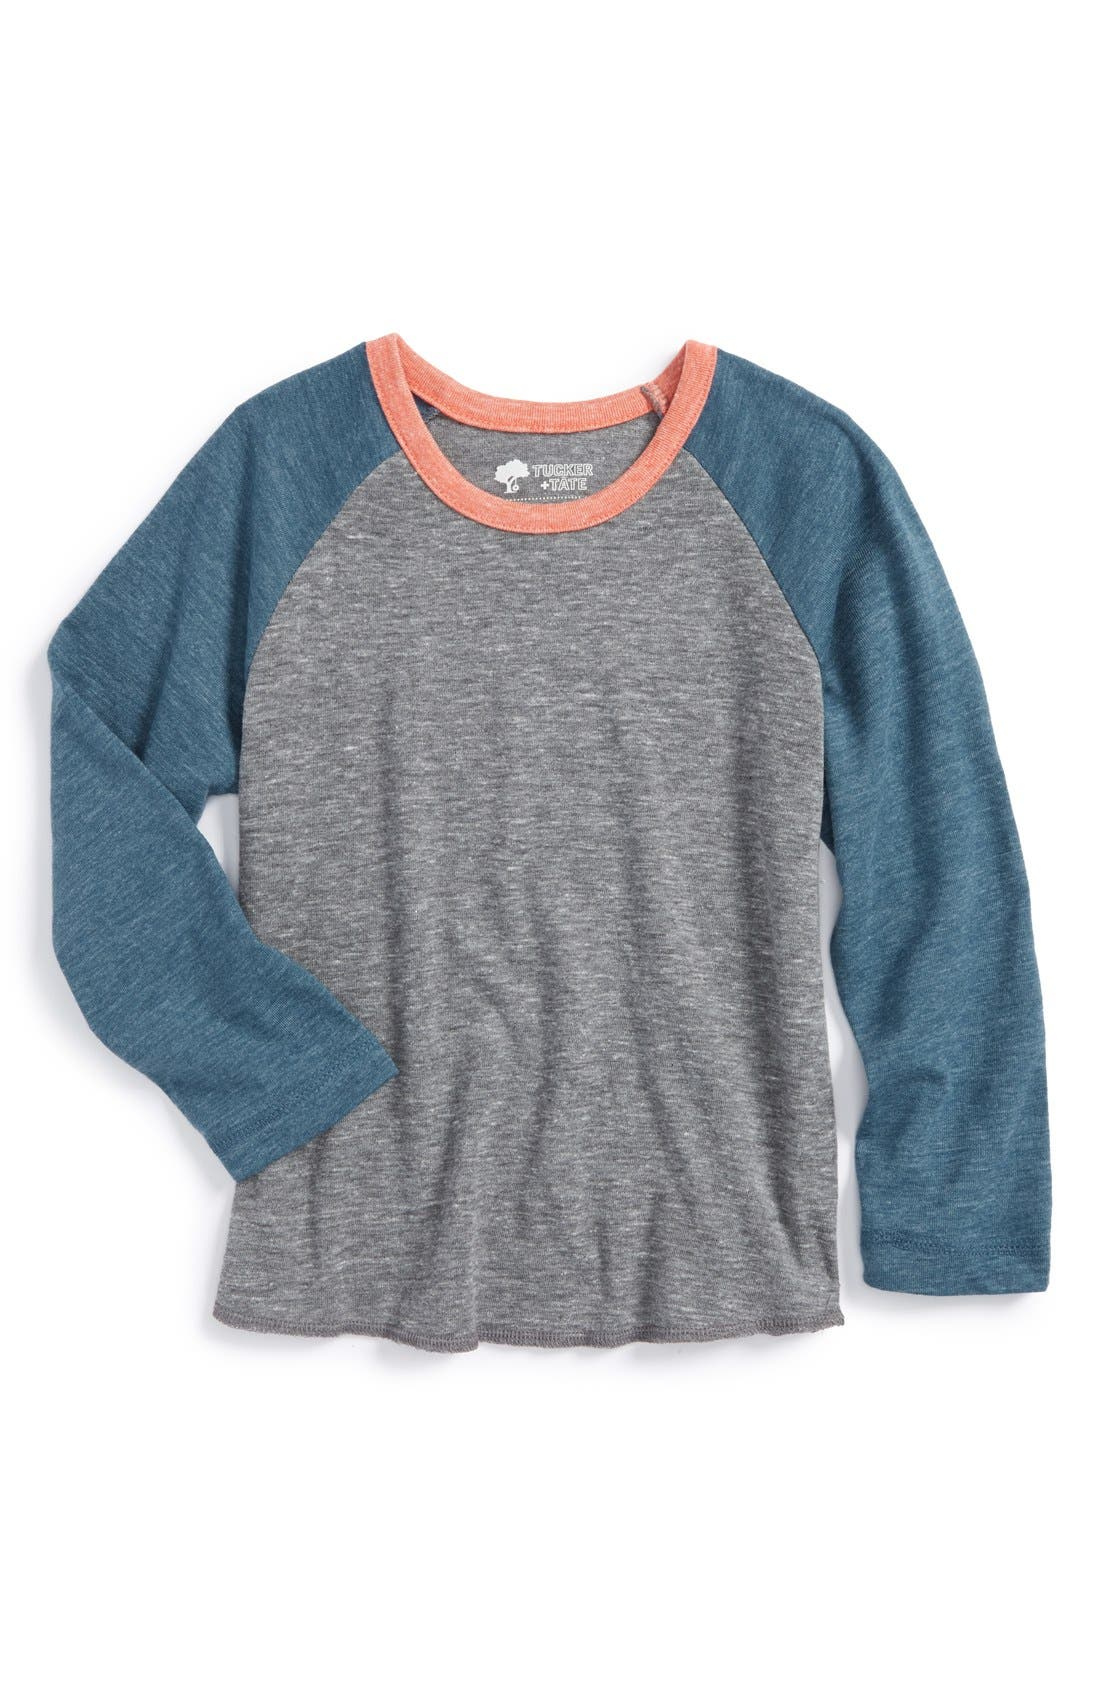 Main Image - Tucker + Tate 'Palmer' Long Sleeve Raglan T-Shirt (Toddler Boys)